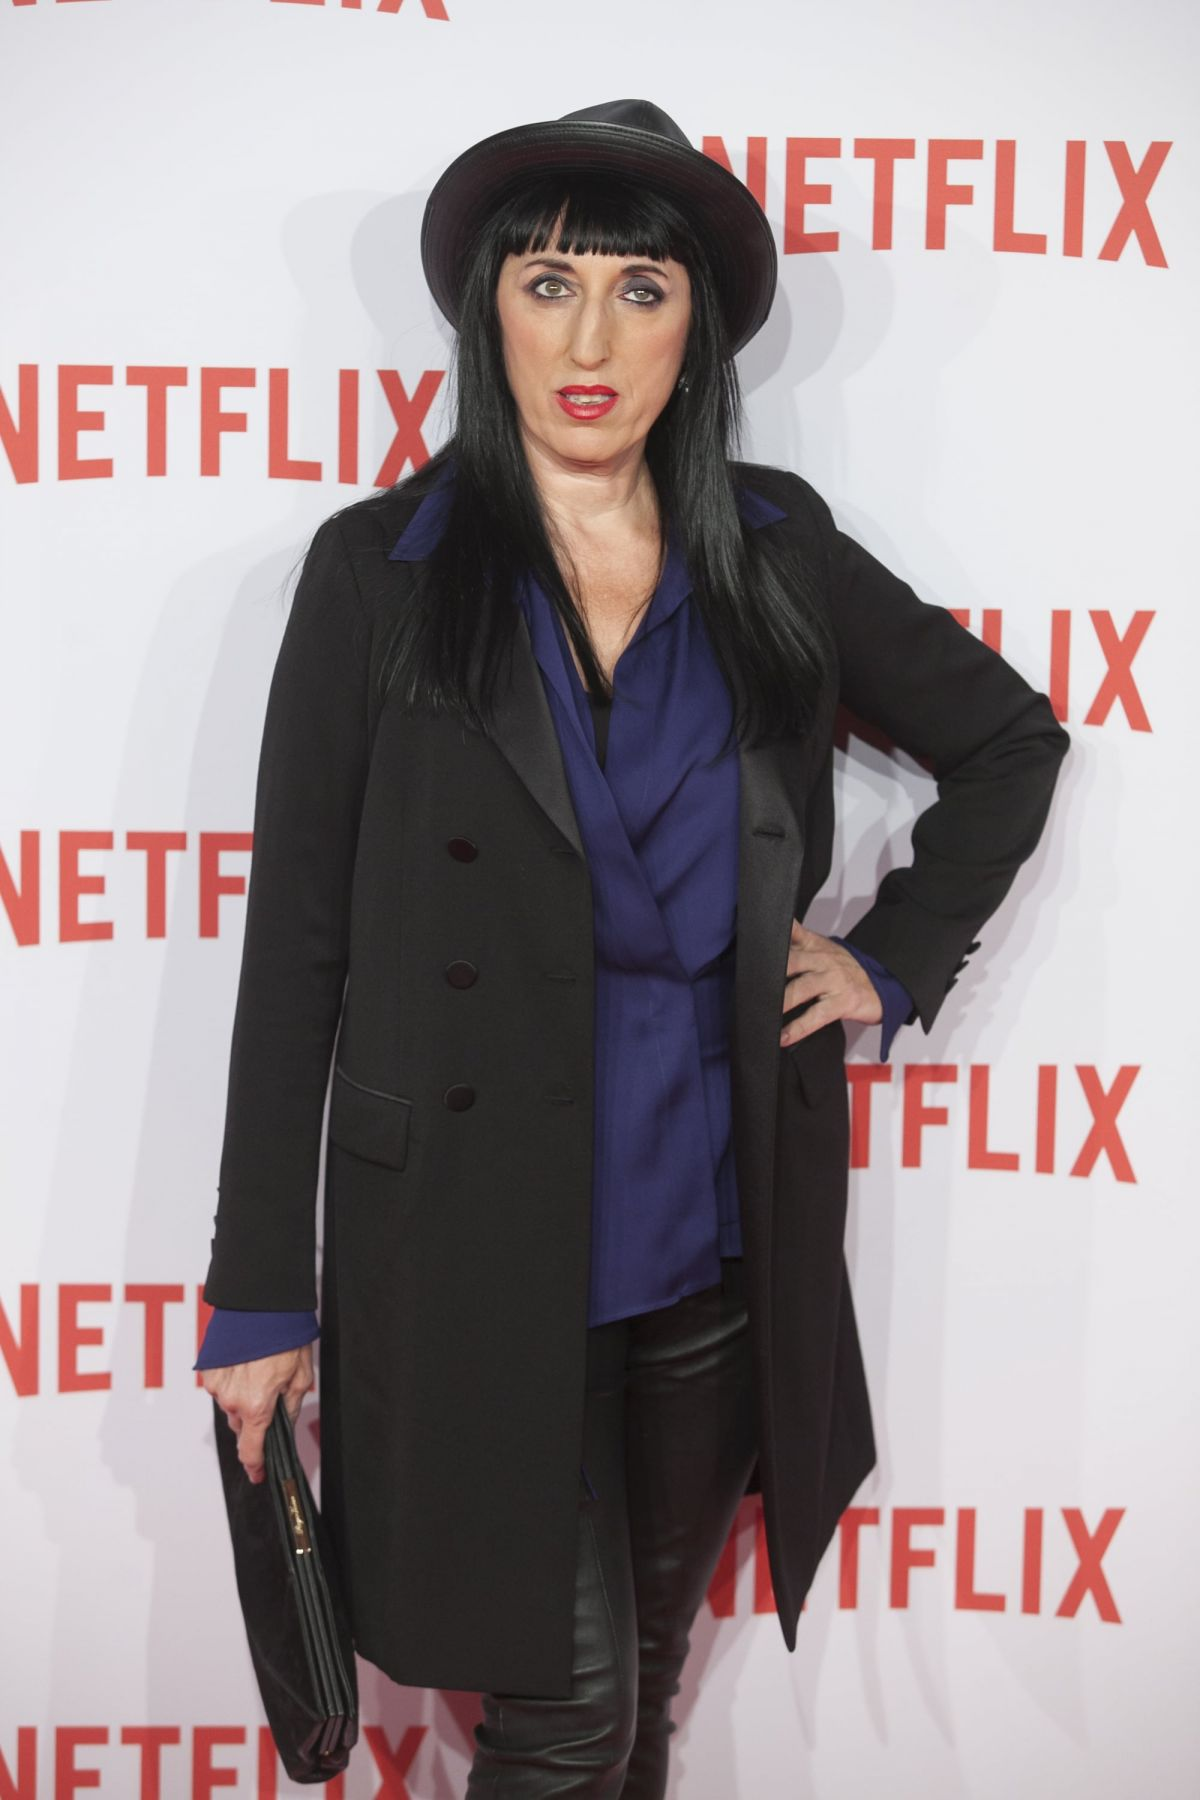 ROSSY DE PALMA at Netflix Spain